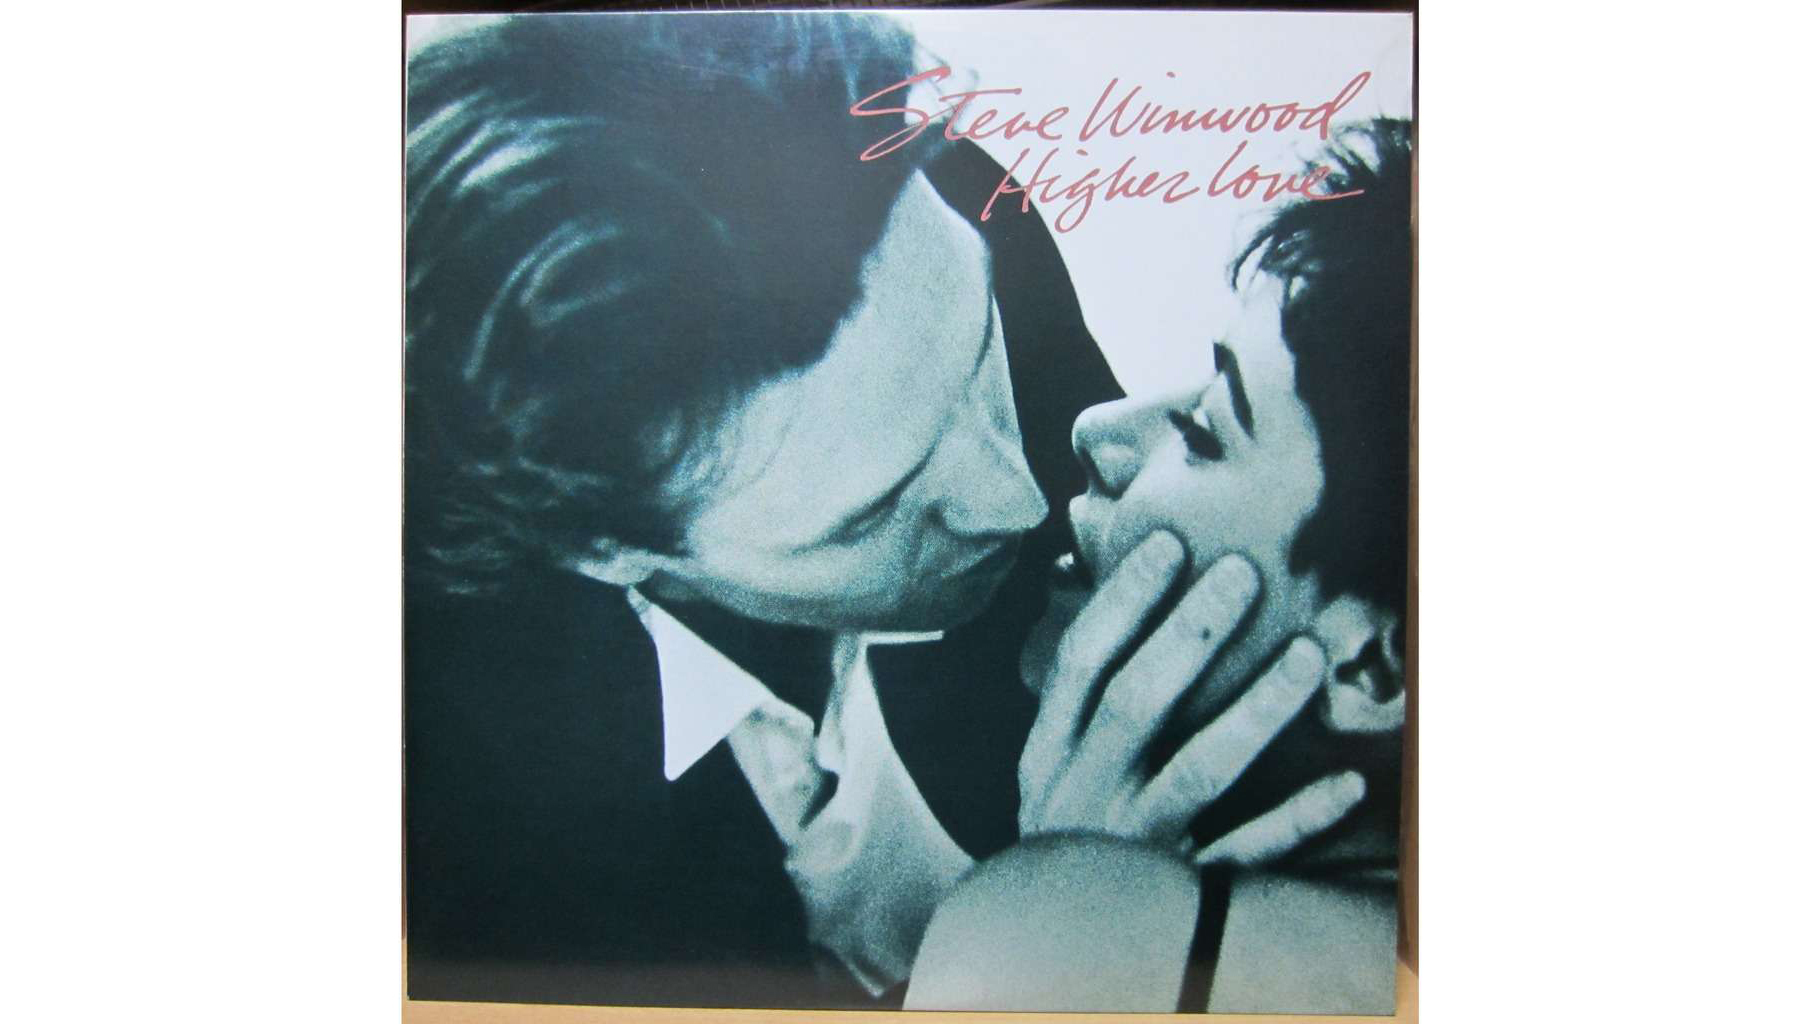 """Higher Love"" by Steve Winwood"